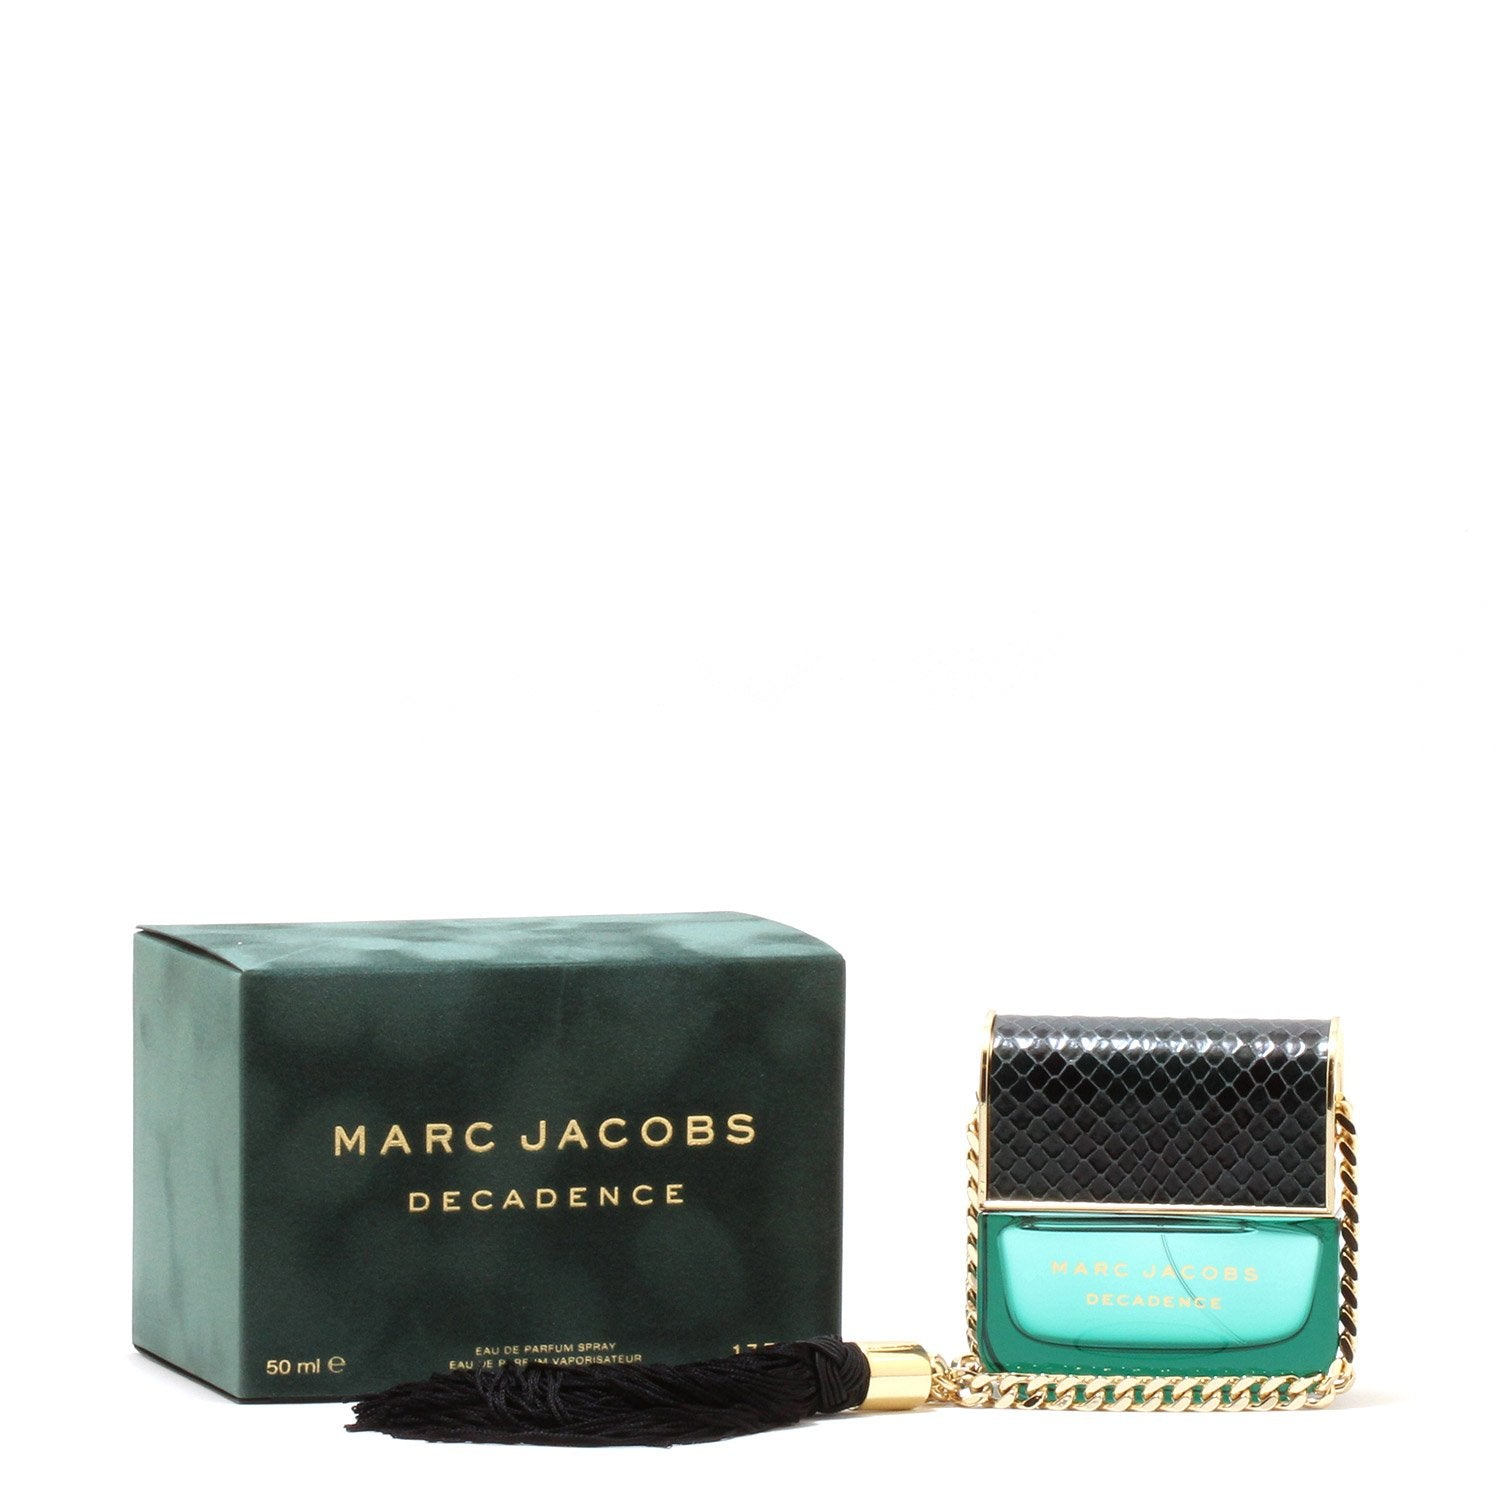 Perfume - MARC JACOBS DECADENCE FOR WOMEN - EAU DE PARFUM SPRAY